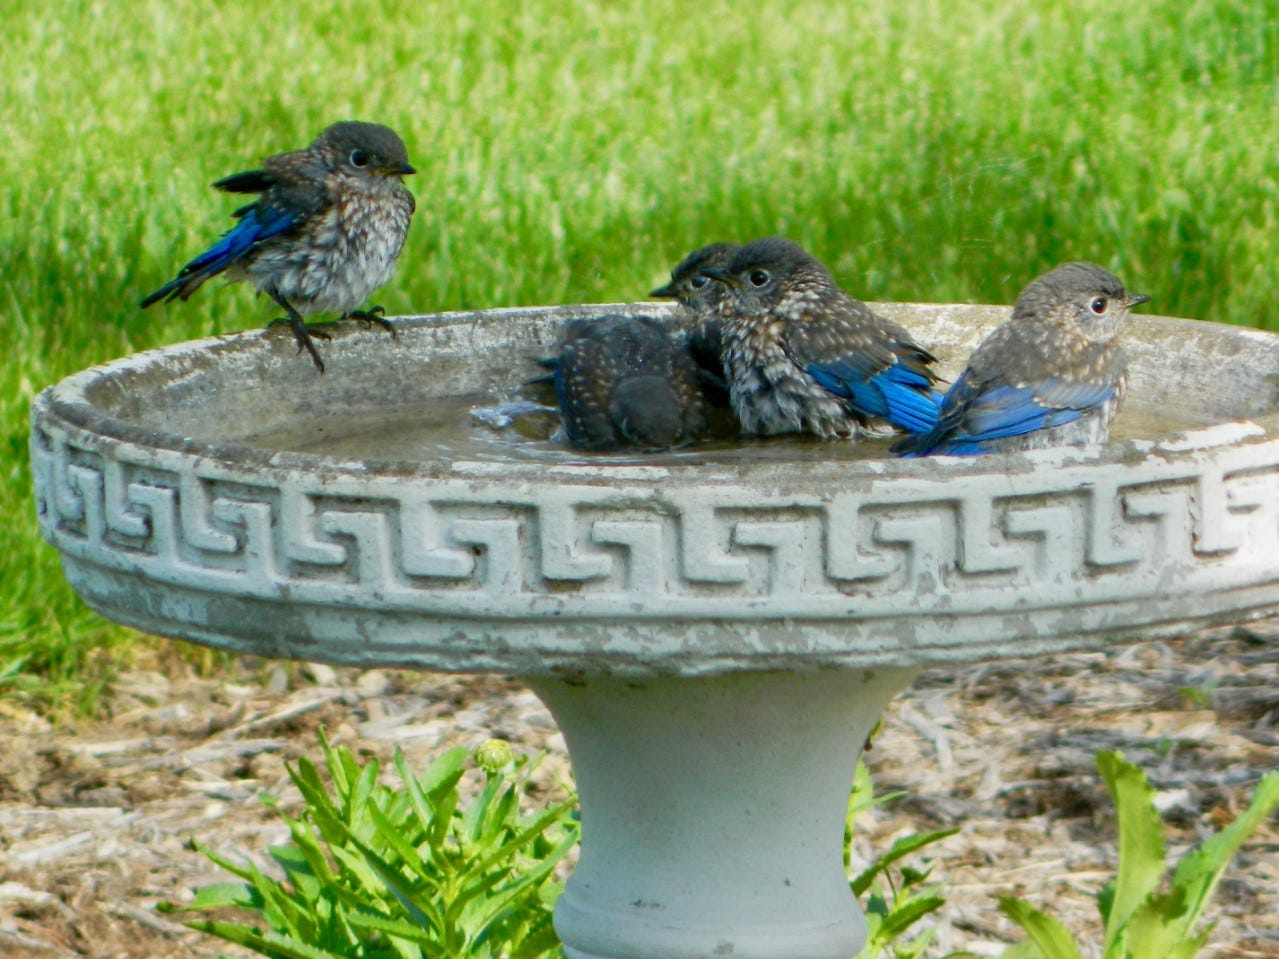 Birdbaths are appealing to birds for both bathing and drinking.